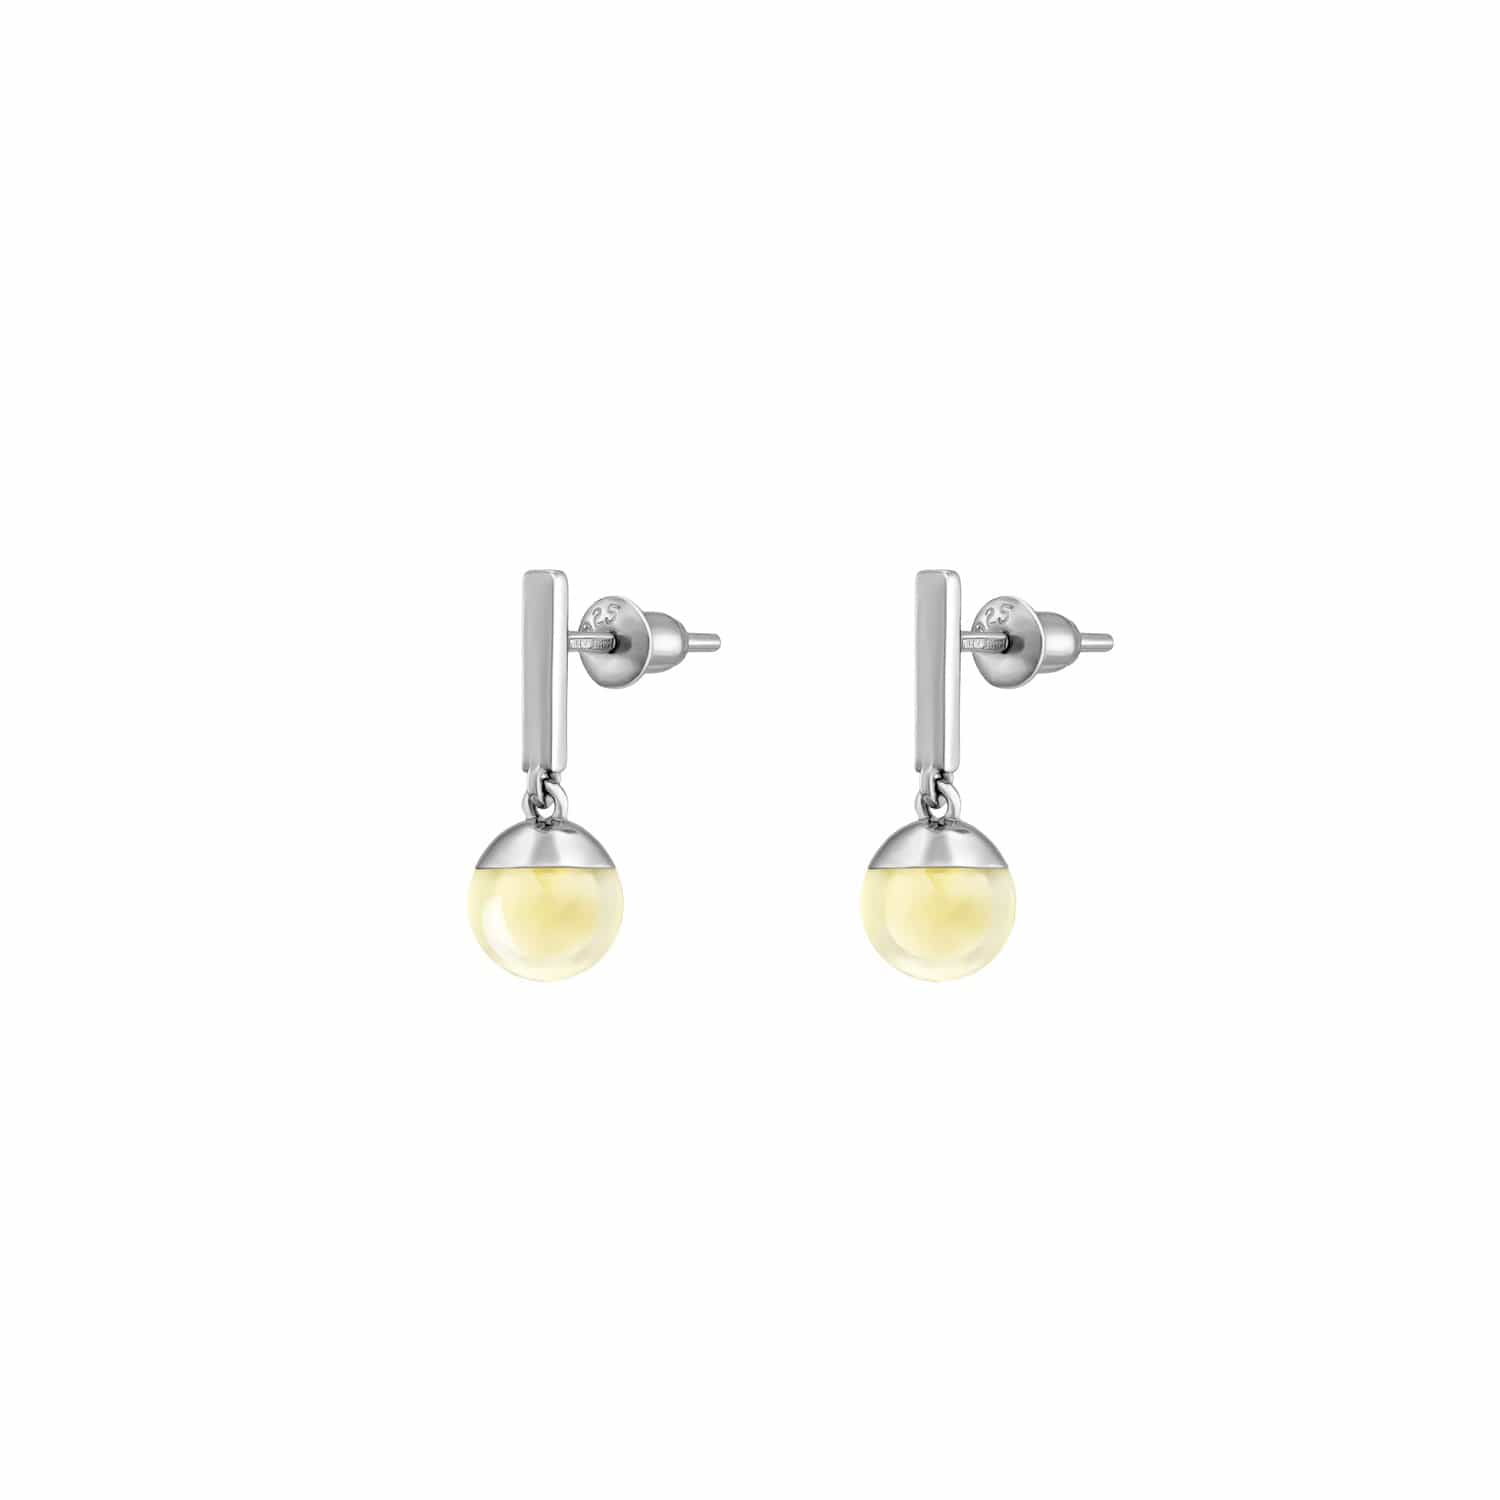 Leta Earrings 1919 Silver Drop Earrings